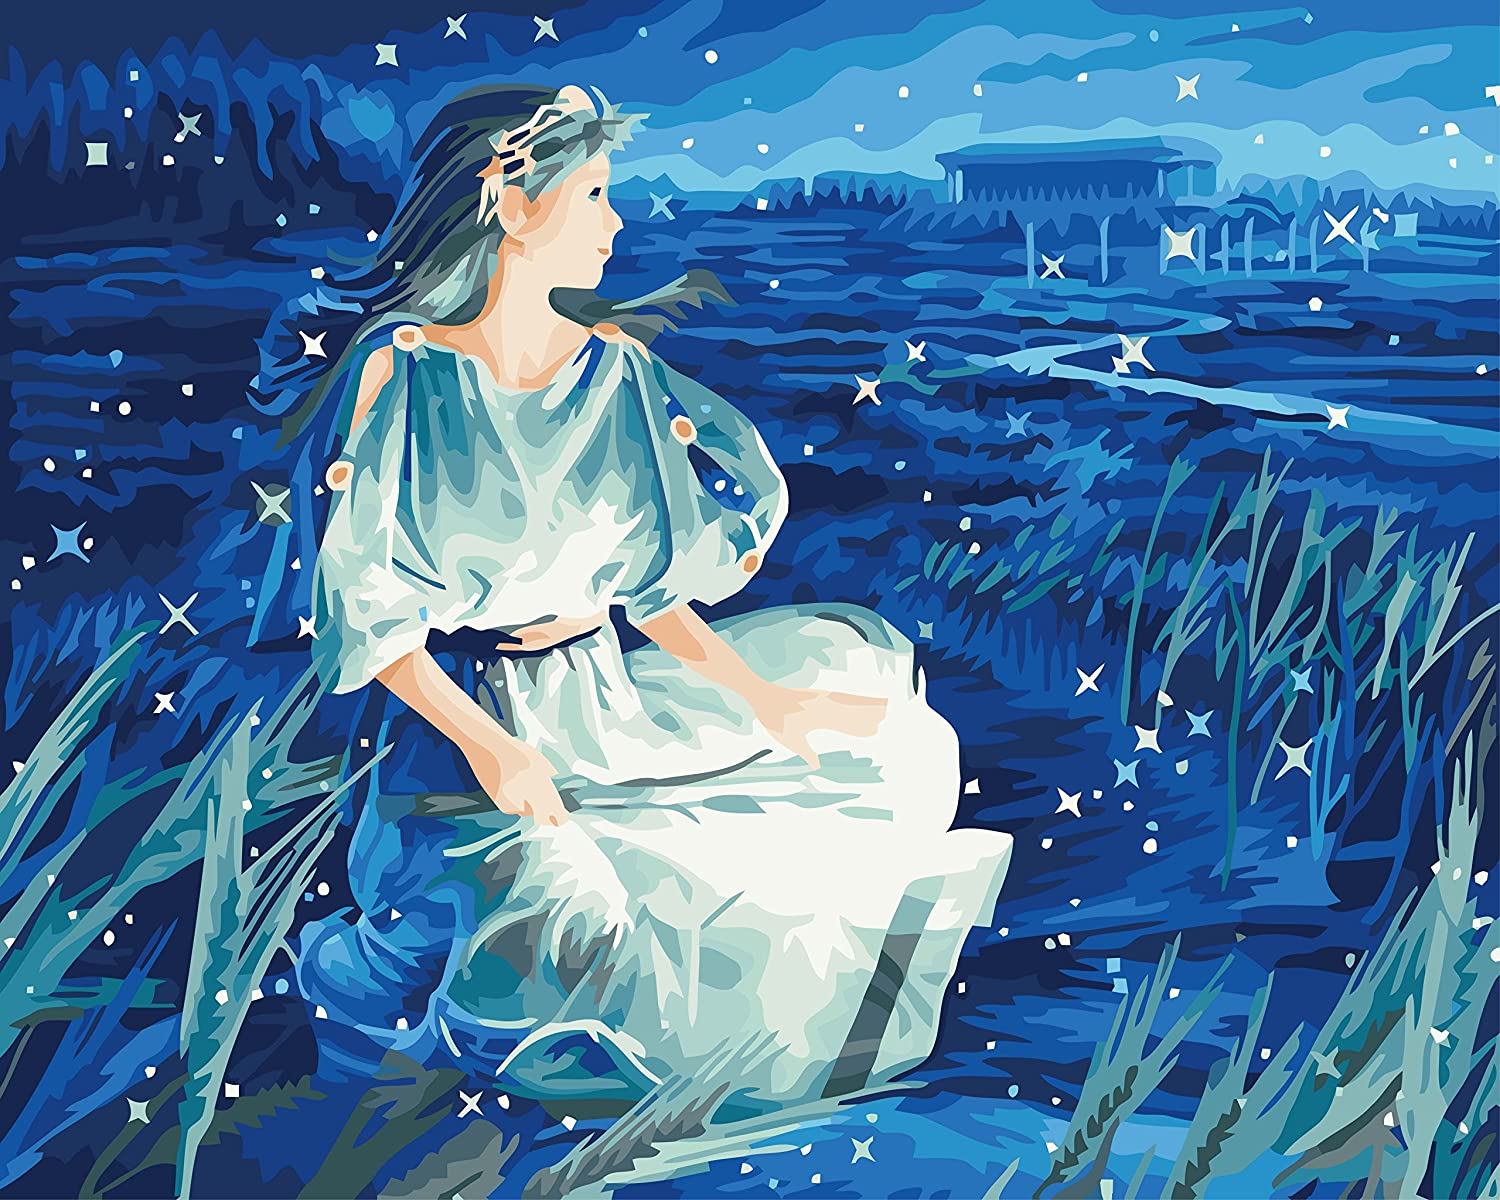 Fuumuui DIY Pre-Printed Canvas Oil Painting Gift for Adults Kids Paint by Number Kits Home Decorations-Virgo 16*20 inch